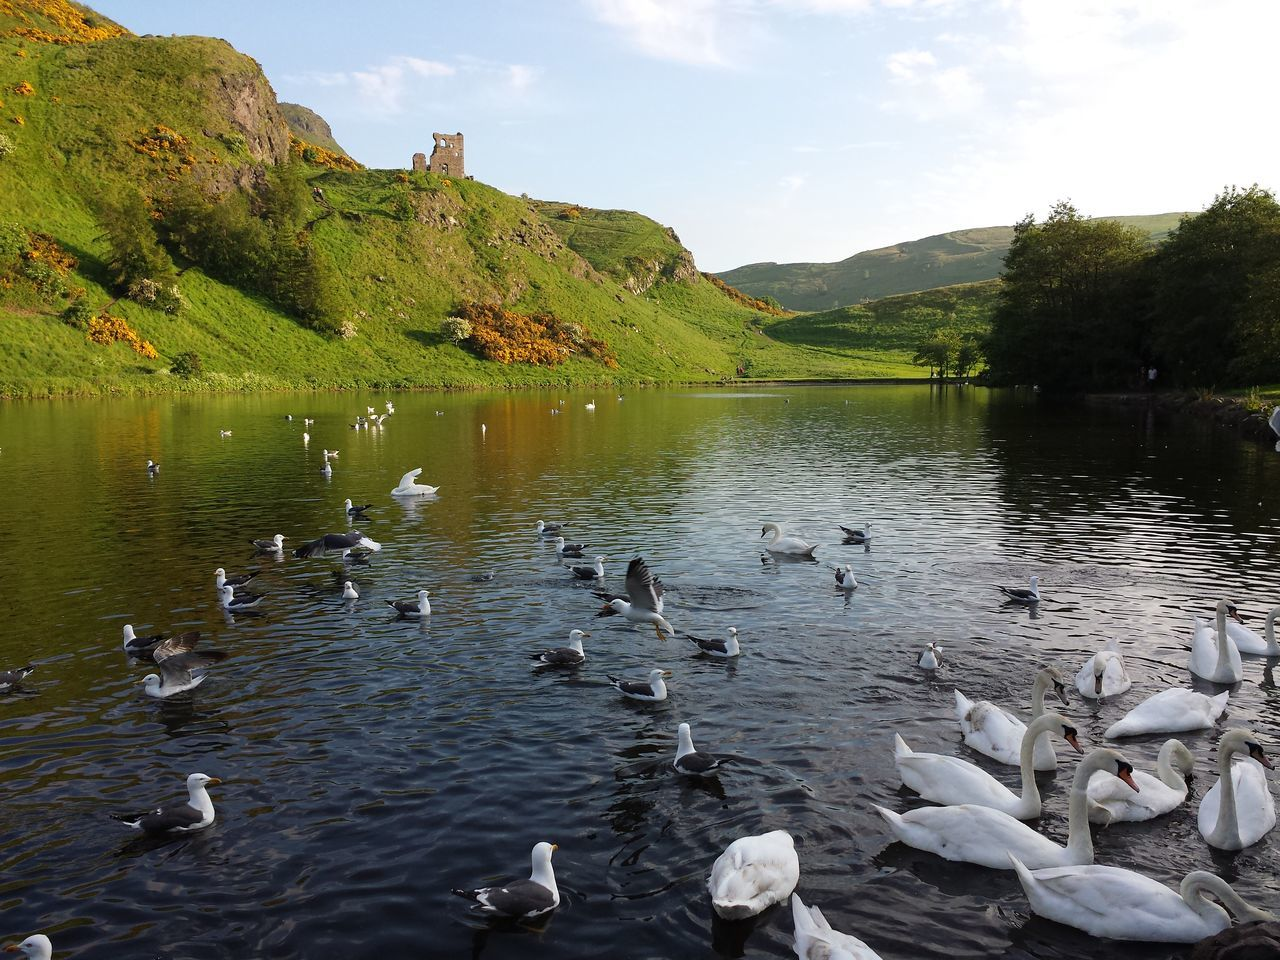 St.Margaret's Loch  on a Summer afternoon, with Swans and Seagulls swimming in foreground. May 2014. Holyrood Park Edinburgh Scotland United Kingdom Urban Hiking Hiking Adventures Hiking Pond Birds Birds And Water Daylight Sun Lush Landscape Scenic Landscape Moment Tranquil Scene Urban Nature